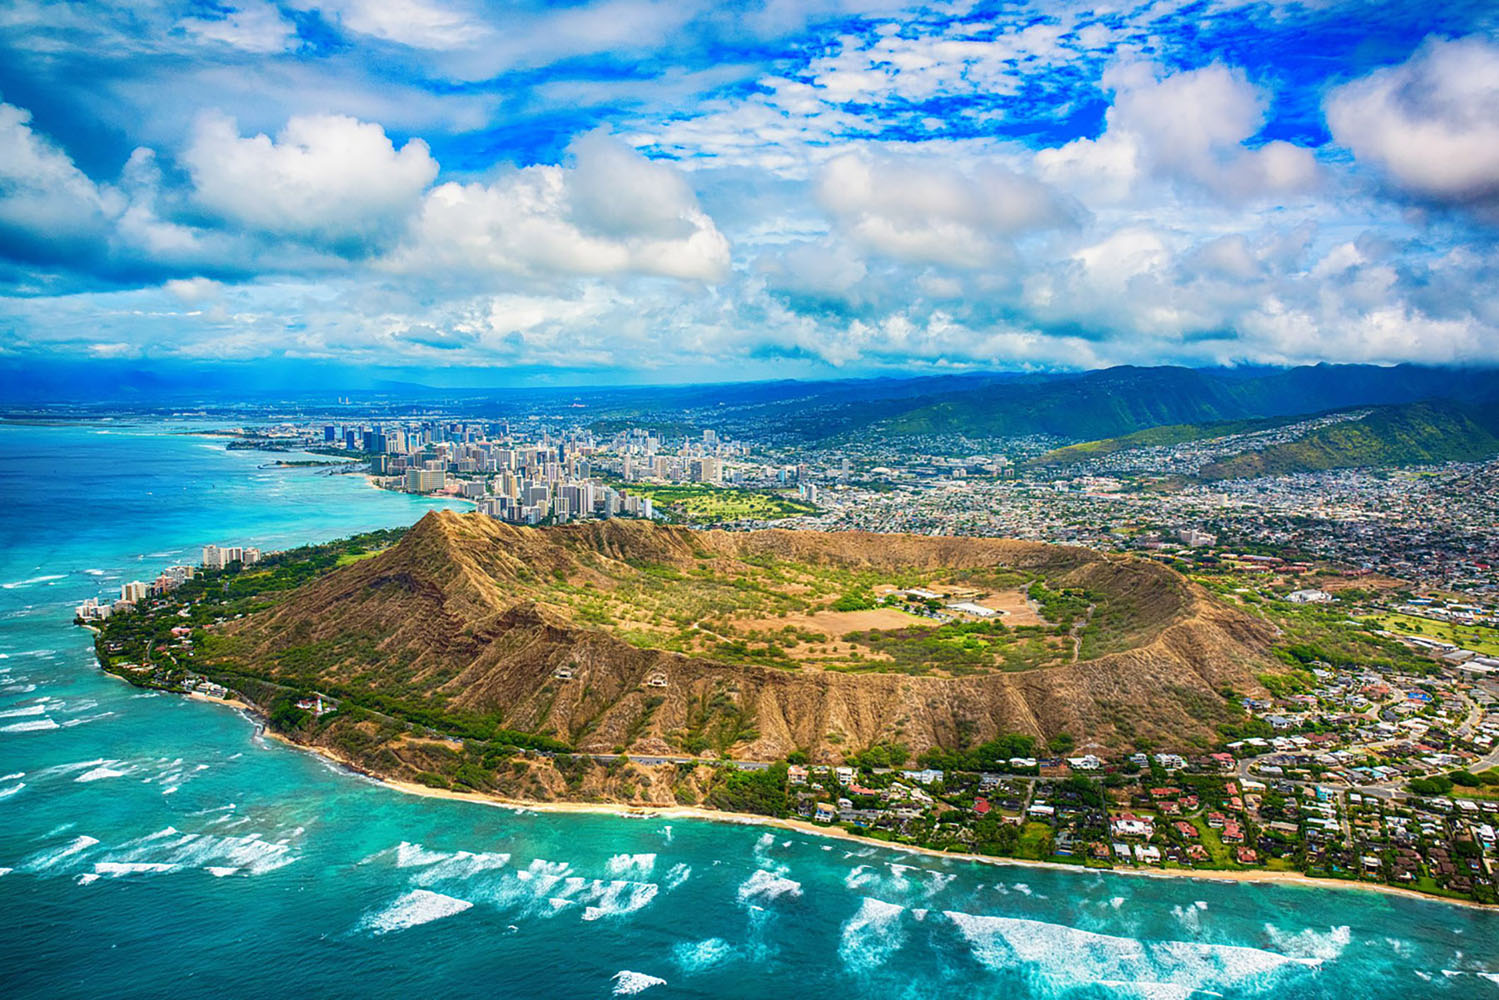 The Diamond Head crater on the shores of Hawaii on a beautiful day